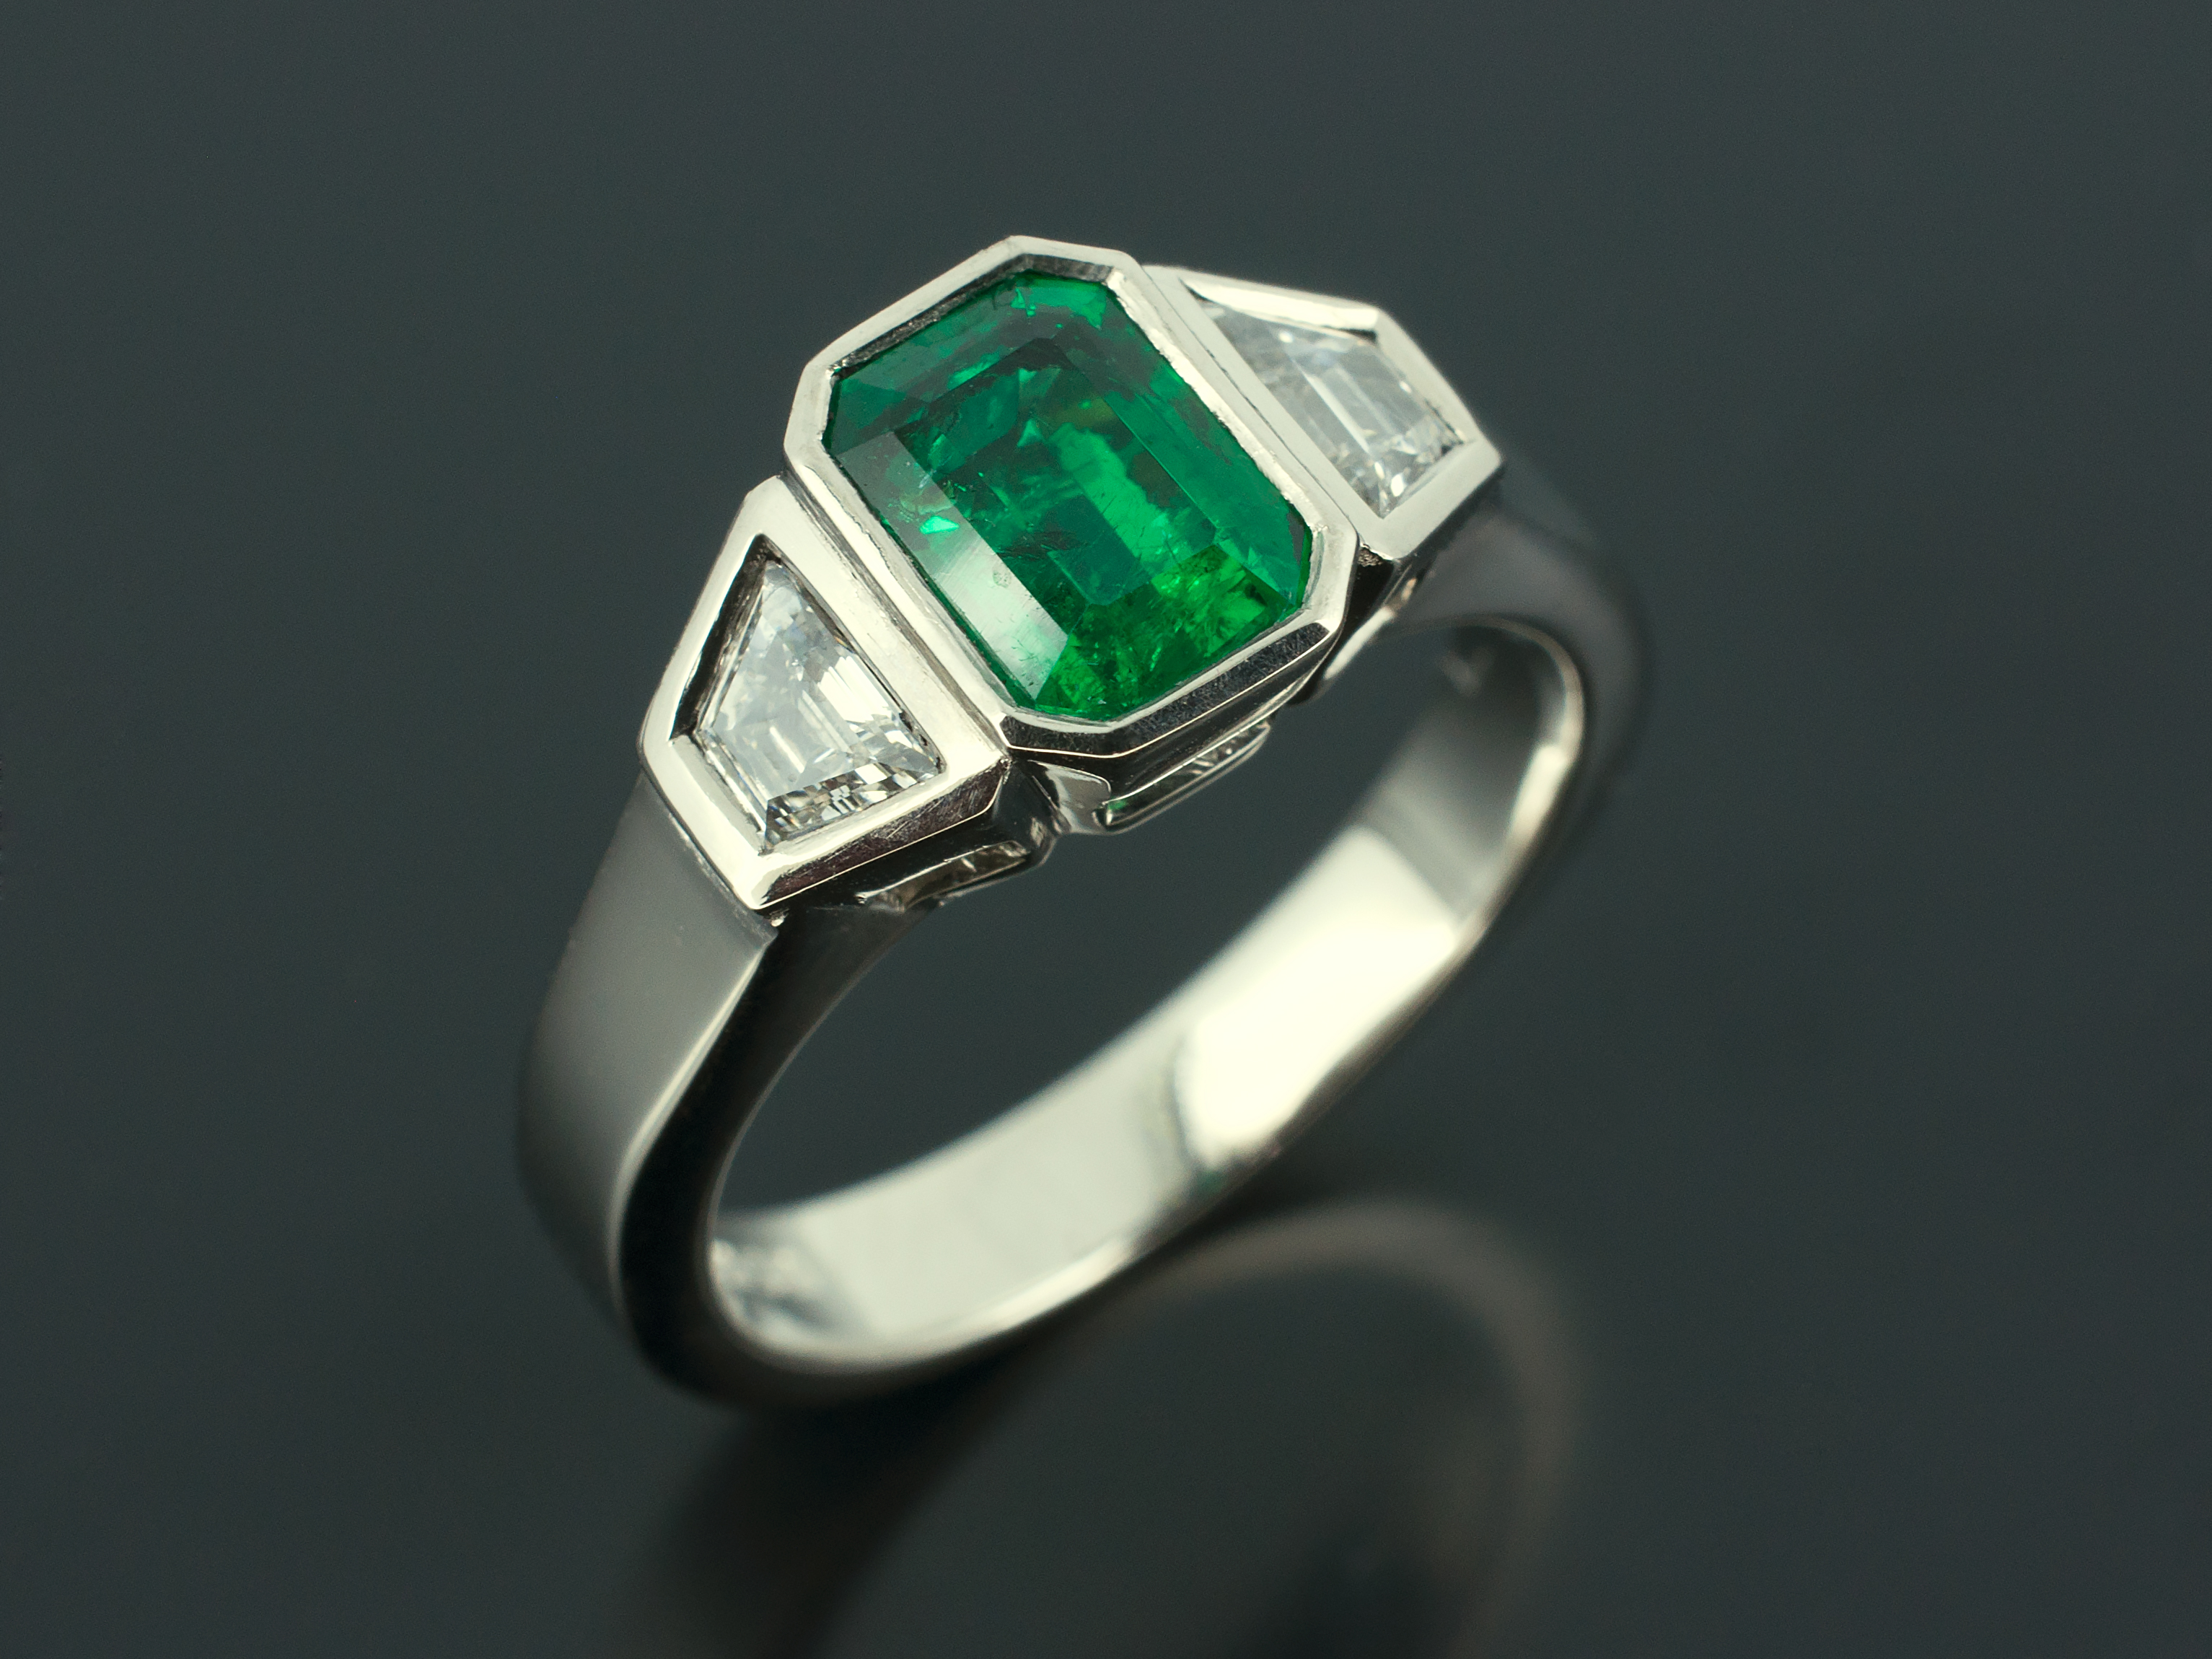 wedding agl cabochon product emerald diamond certified colombian ring rive gauche